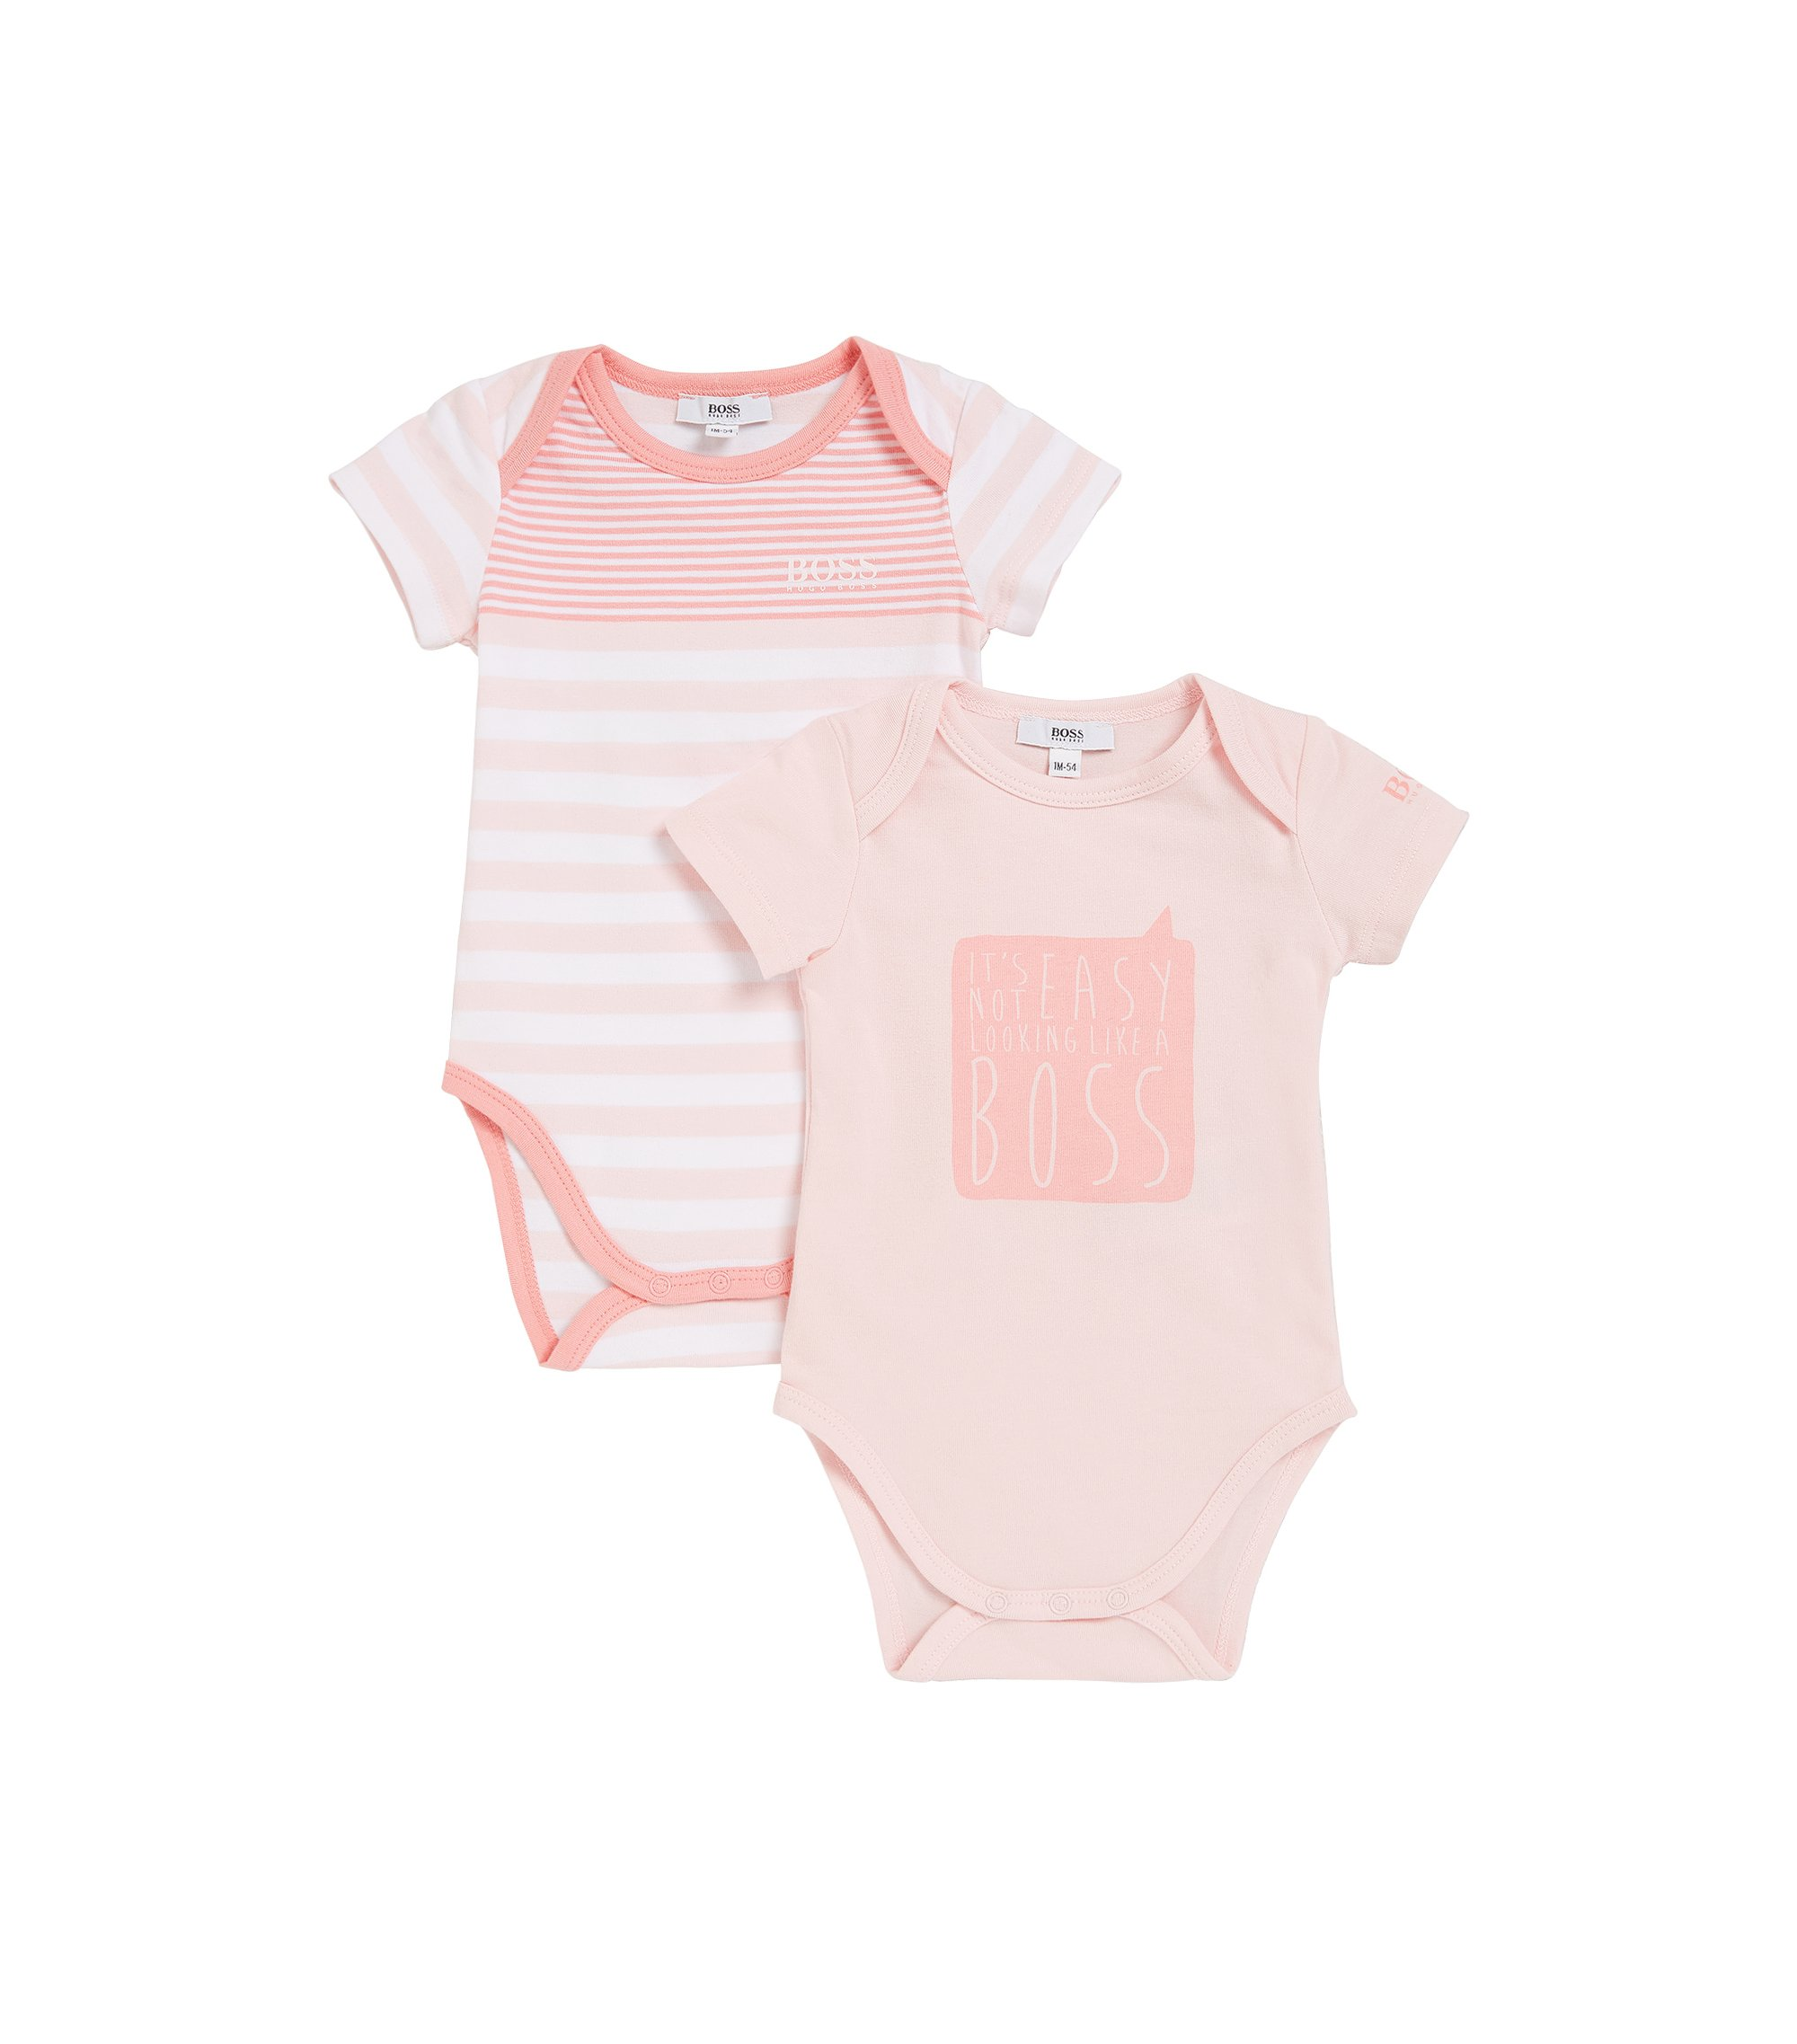 Baby-Bodys aus Single-Jersey im Zweier-Pack, Hellrosa